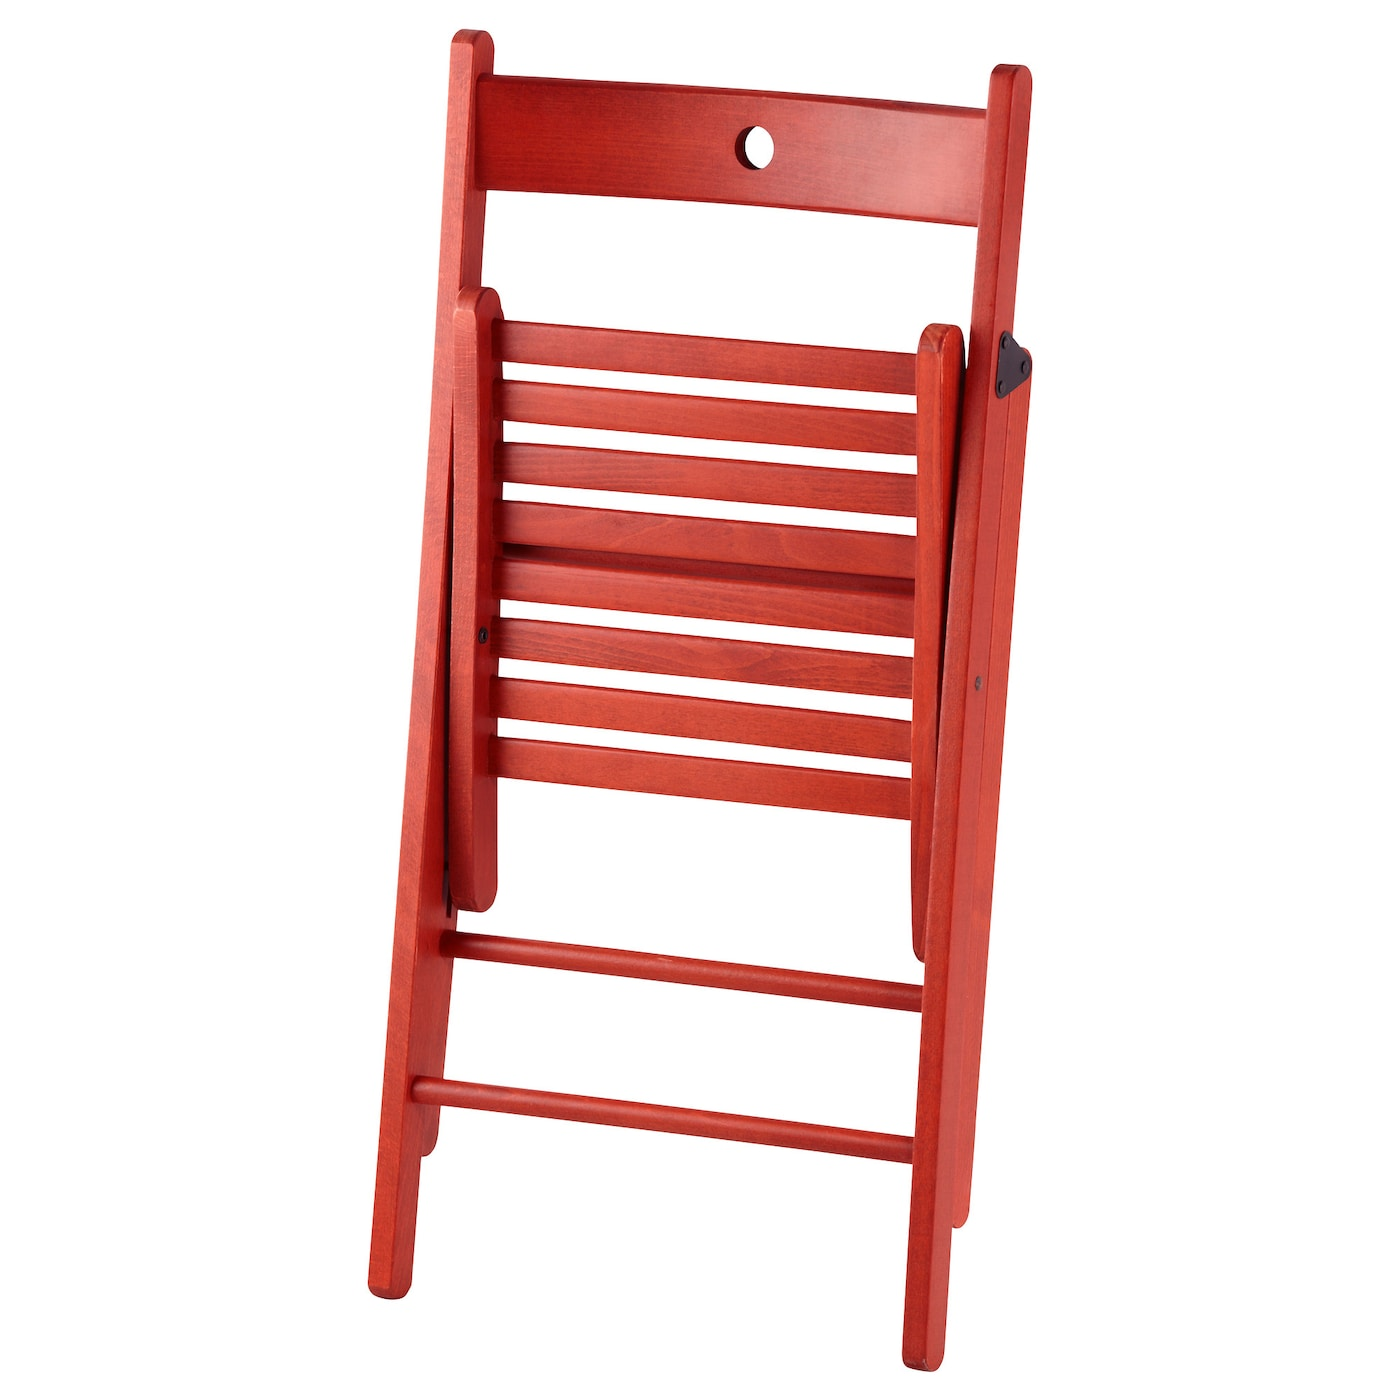 TERJE Folding chair Red IKEA